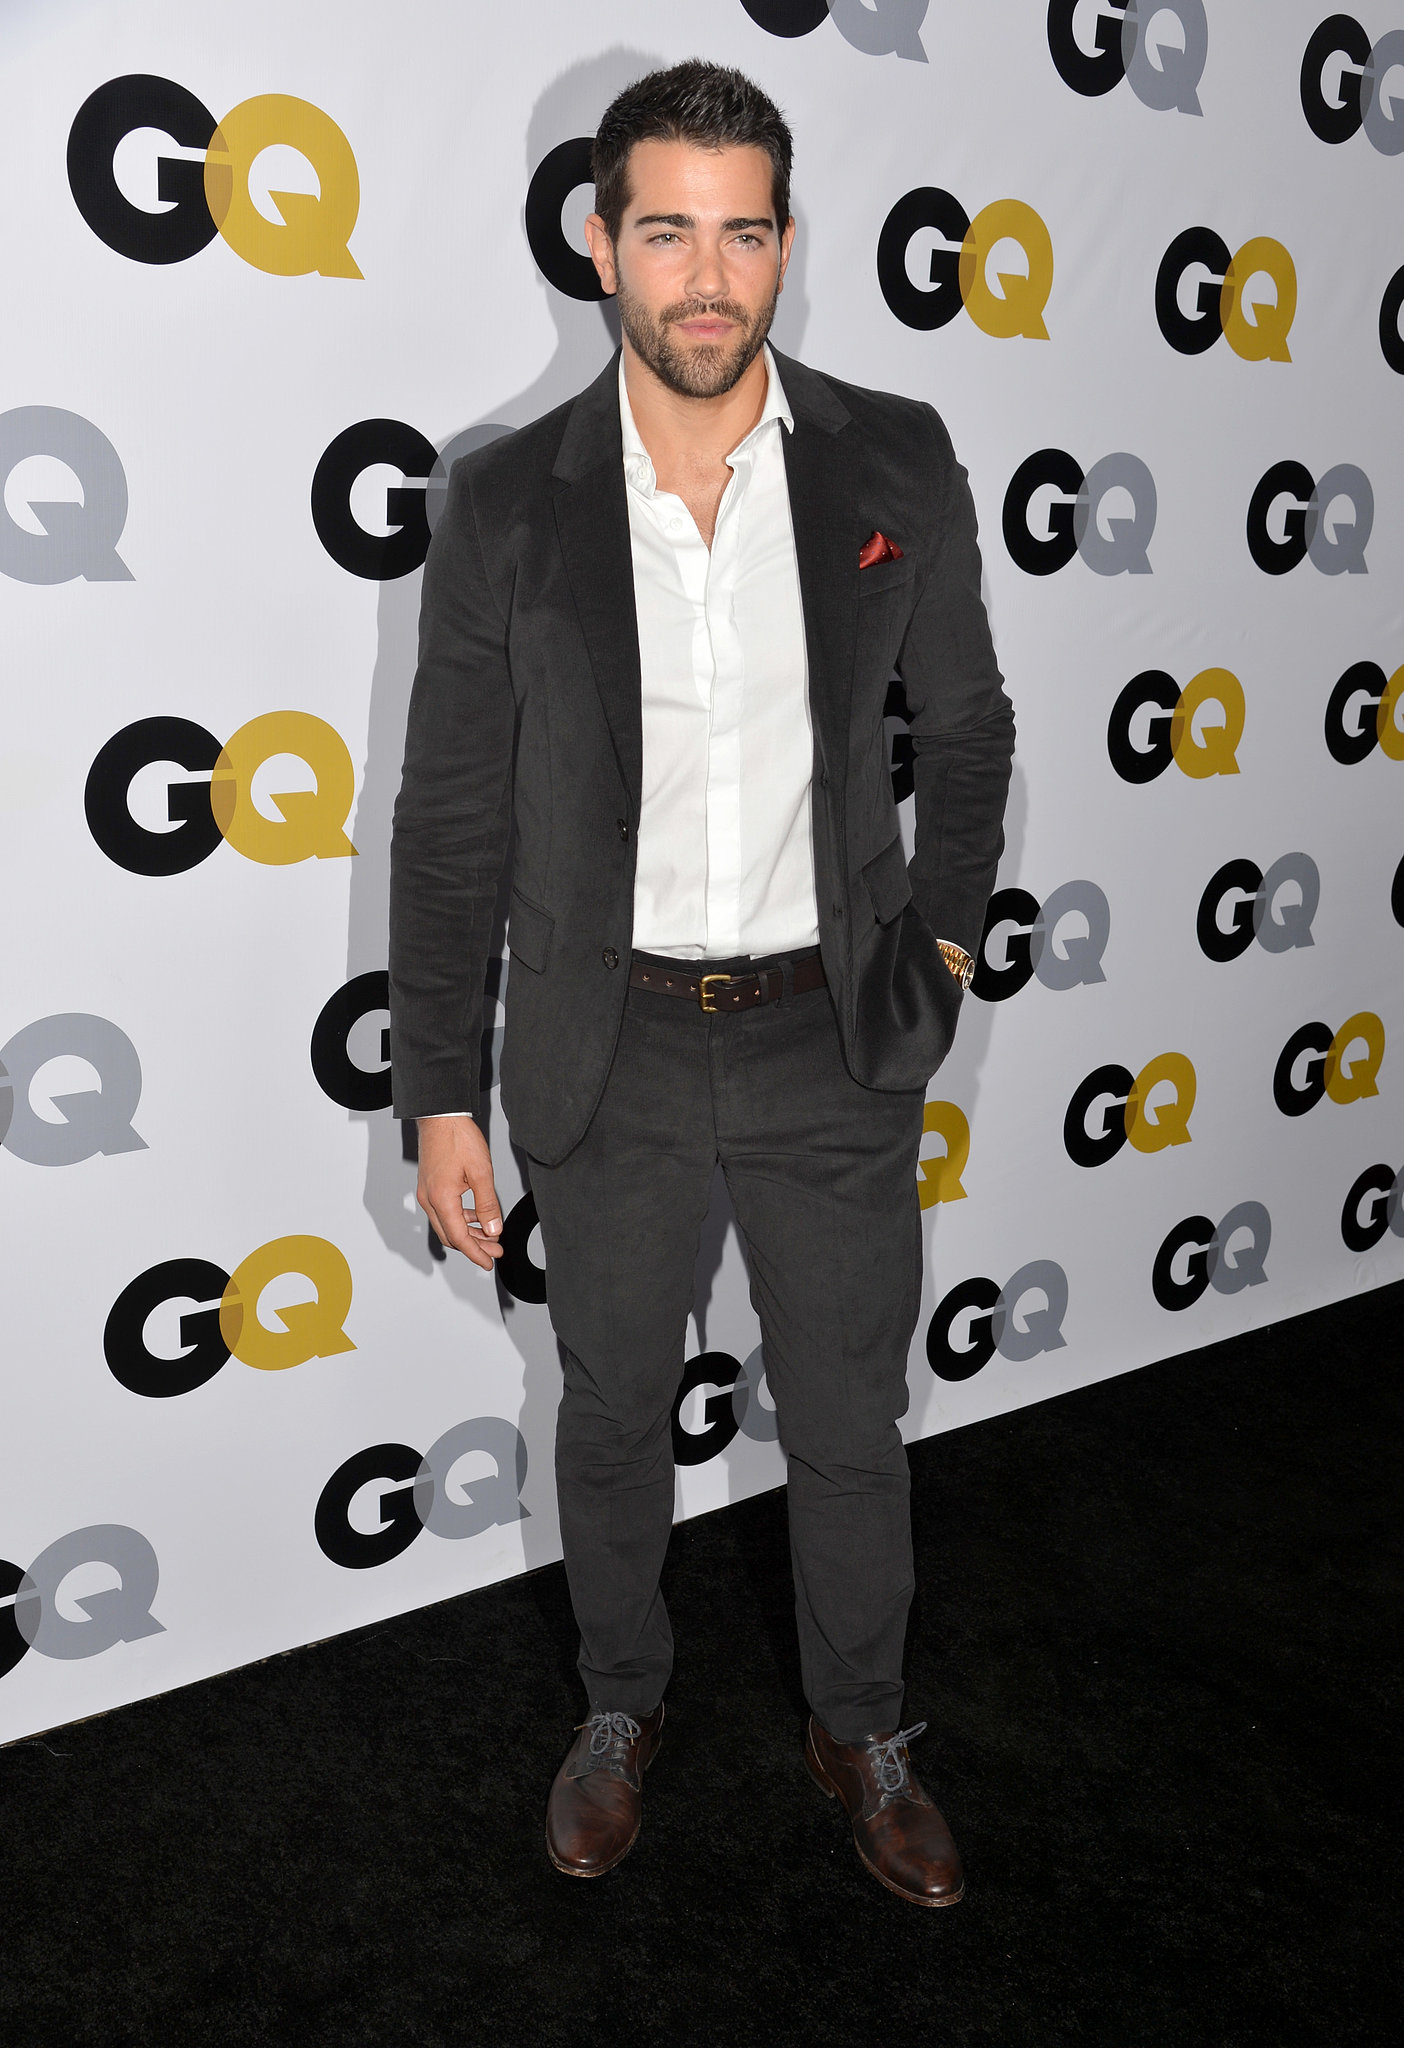 Jesse Metcalfe was on hand for the LA event.